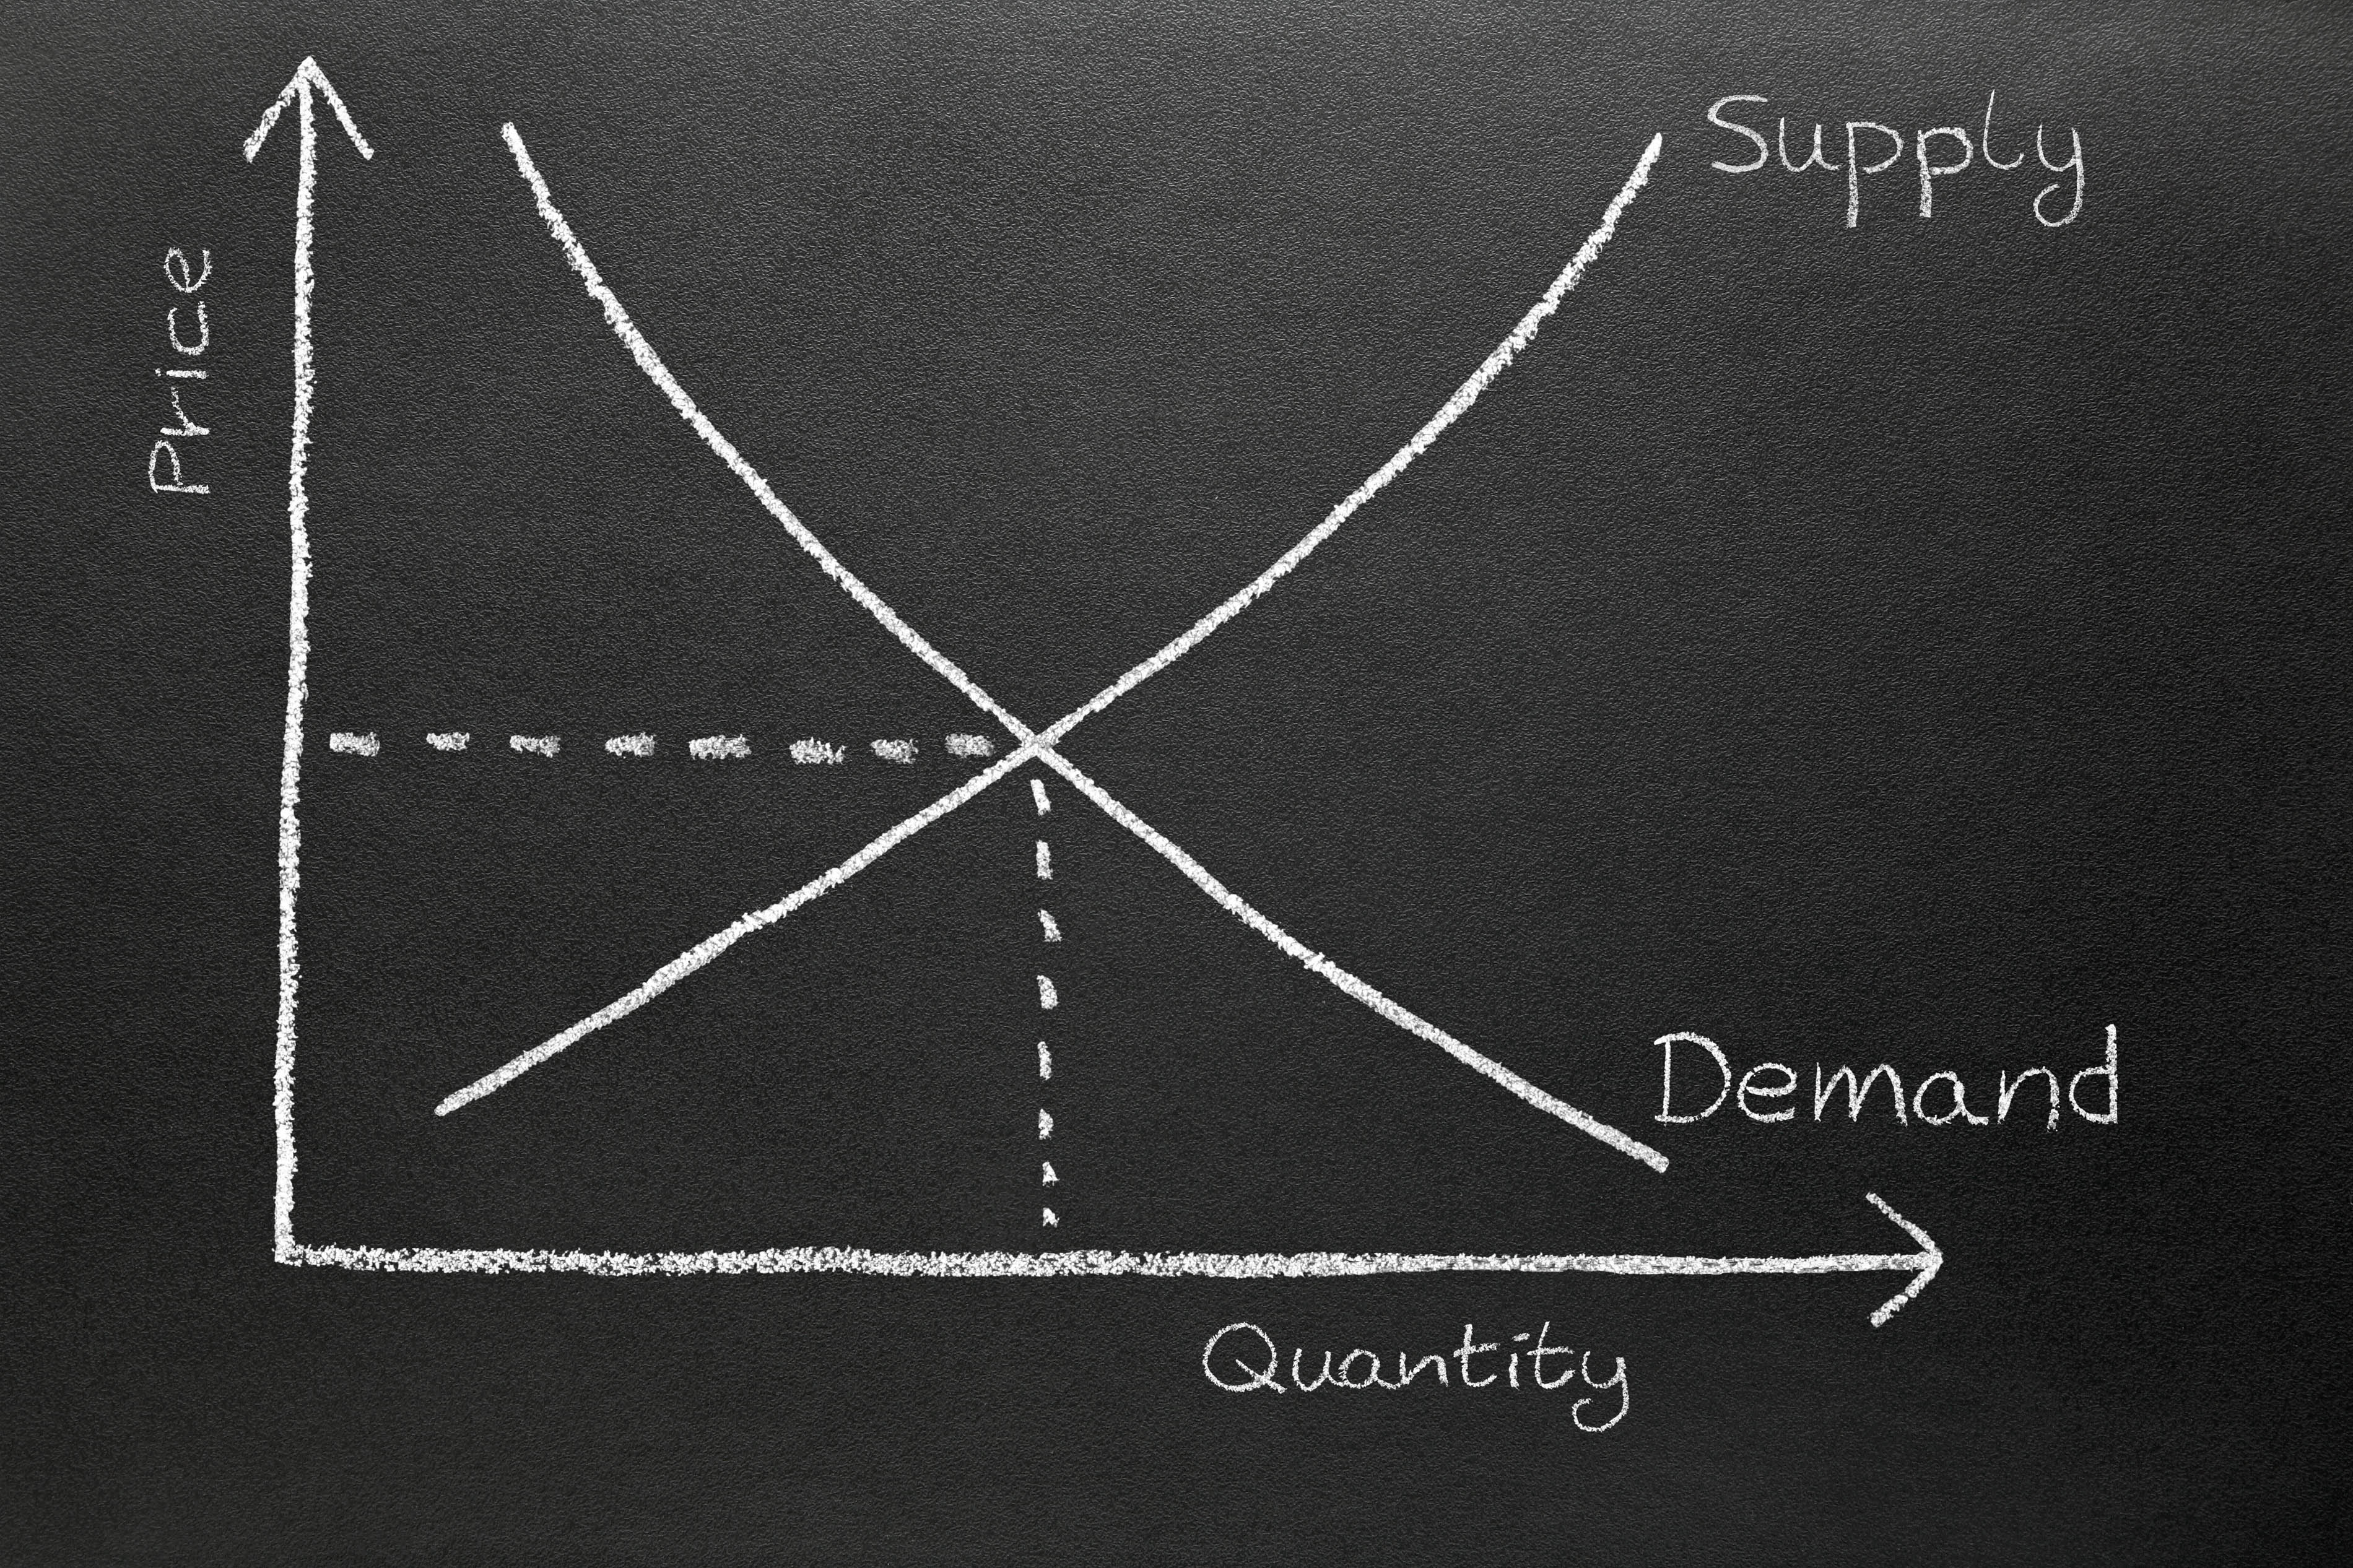 essay about how supply and demand affects life Price theory lecture 2: supply & demand i the basic notion of supply & demand supply-and-demand is a model for understanding the determination of the price of.